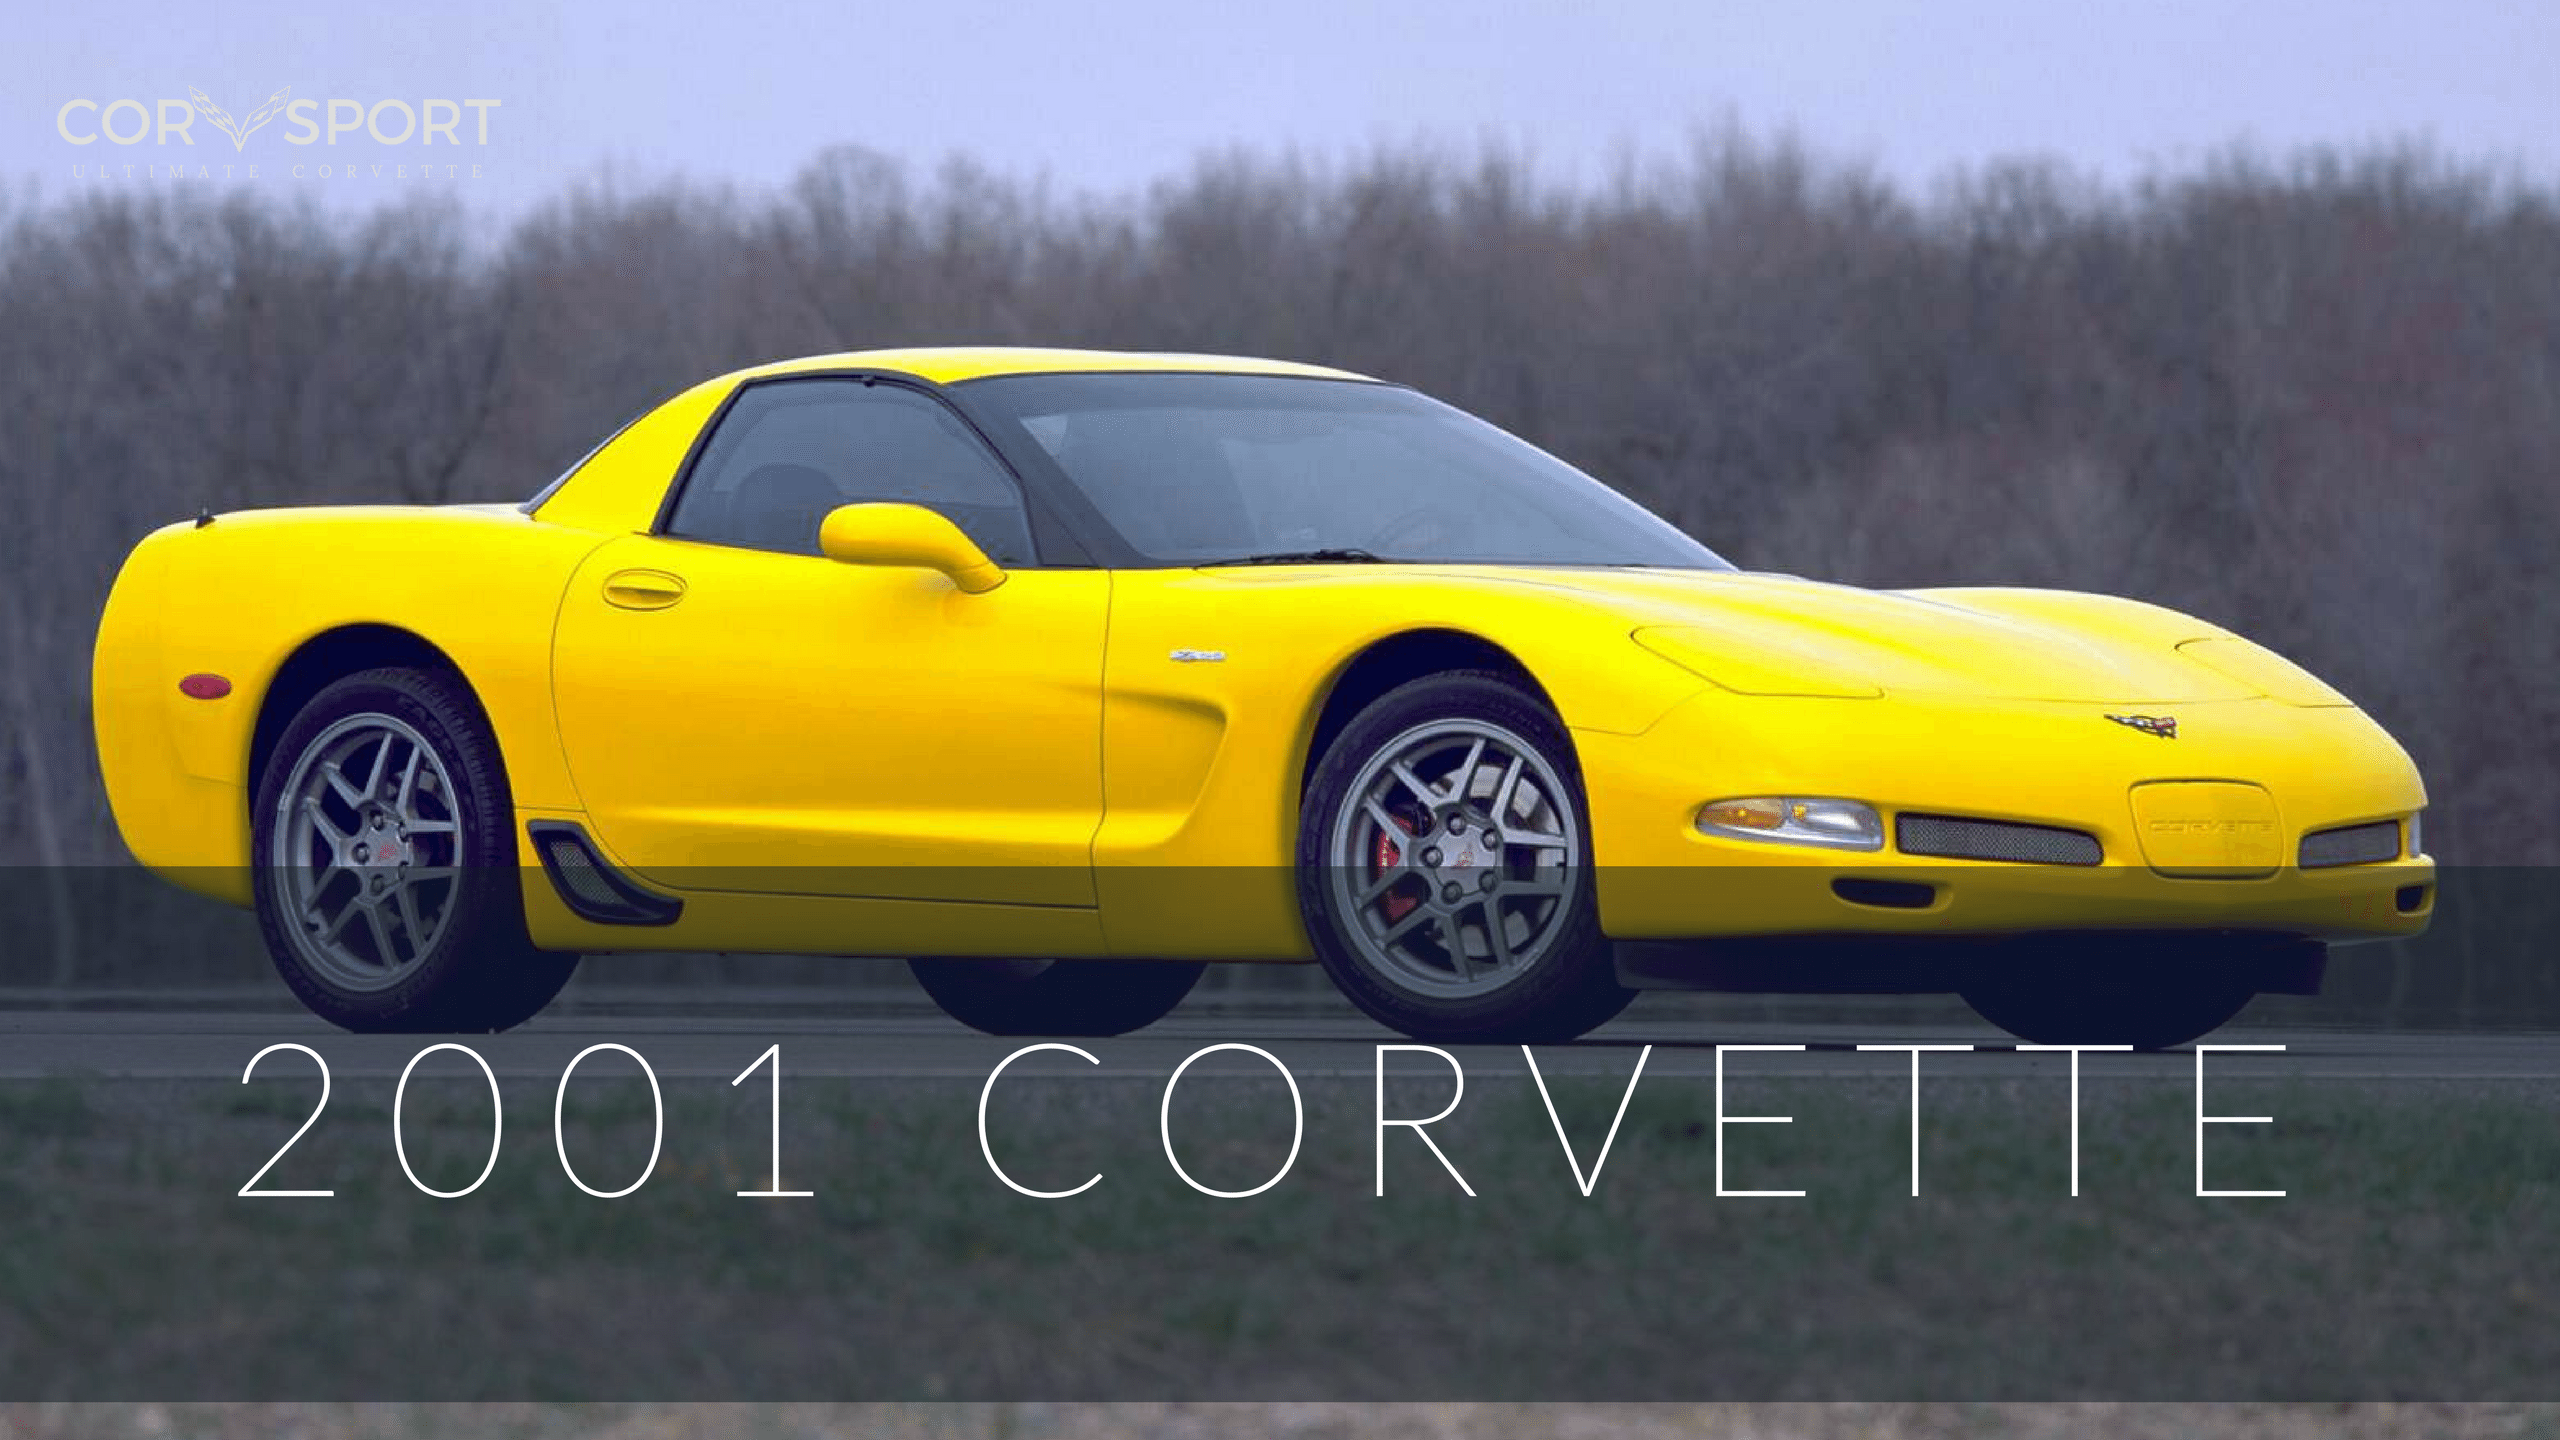 2001 c5 corvette ultimate guide overview specs vin info rh corvsport com Chevrolet Corvette GTP 2013 Corvette Stingray